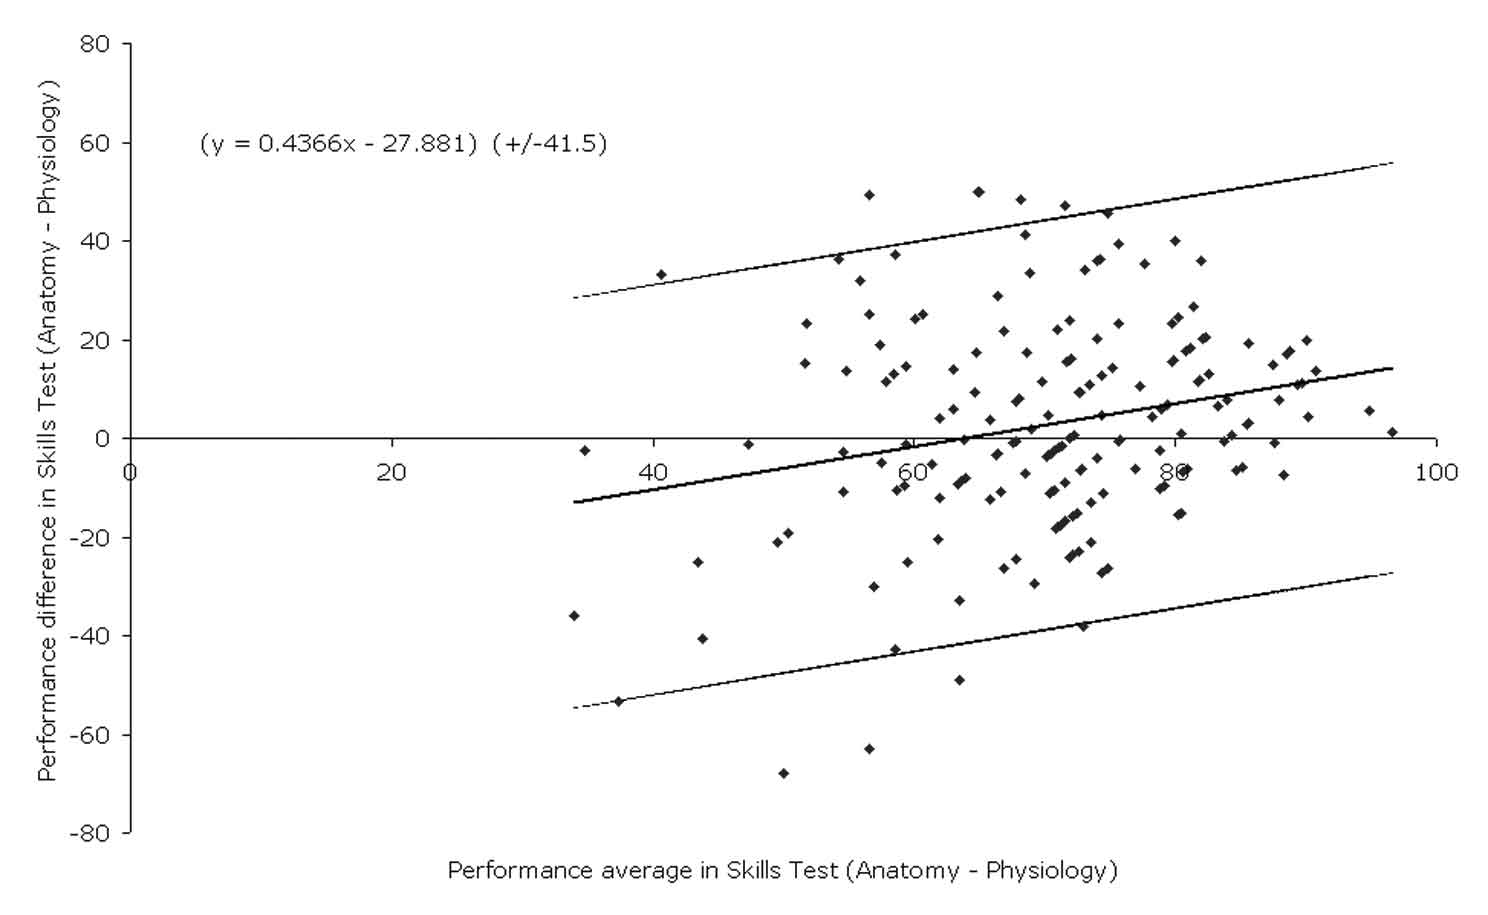 Agreement in Student Performance in Assessment Skills test Agreement between the student performance in the Anatomy and Physiology Module is shown in Figure 3 and summarized in Table 5.